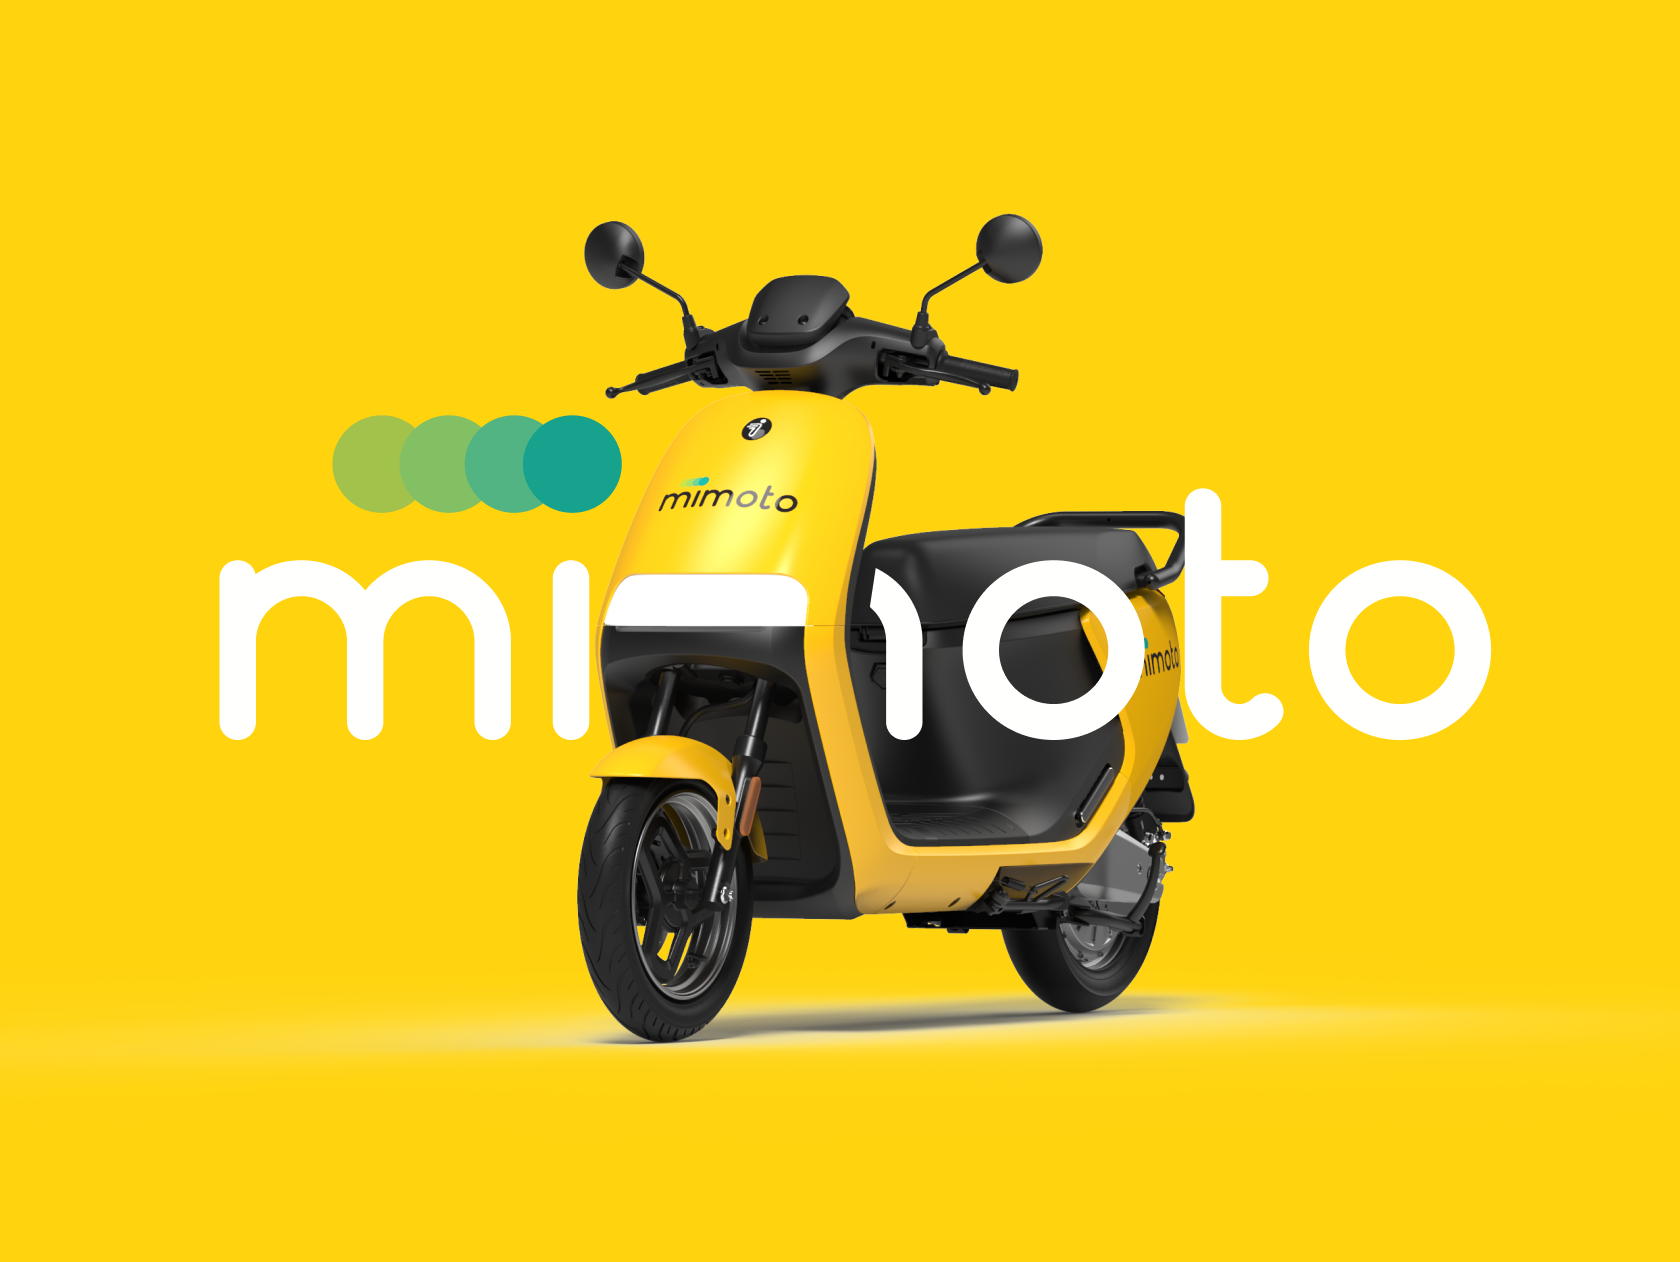 Helbiz acquires Mimoto to introduce and scale Moped sharing in Italy